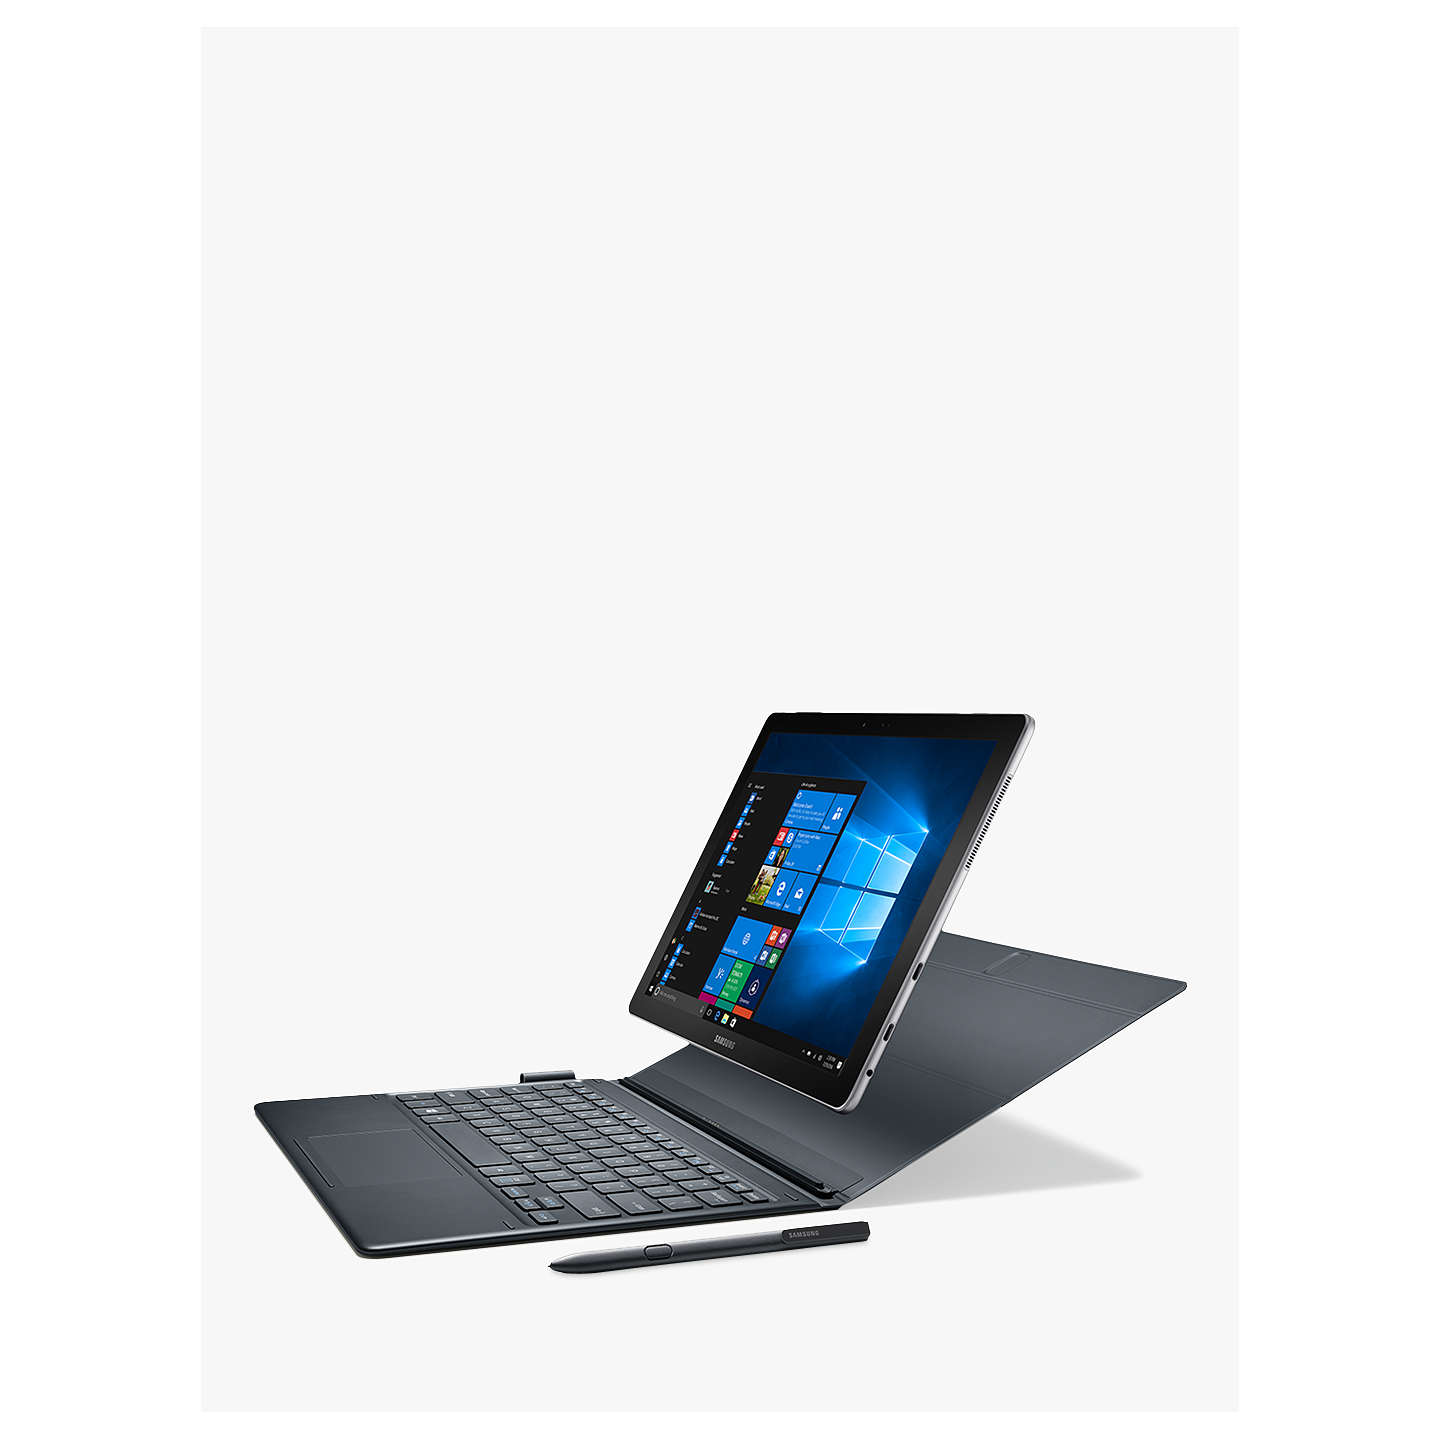 "BuySamsung Galaxy Book, Intel Core i5, 4GB RAM, 128GB SSD, 12"", Black Online at johnlewis.com"